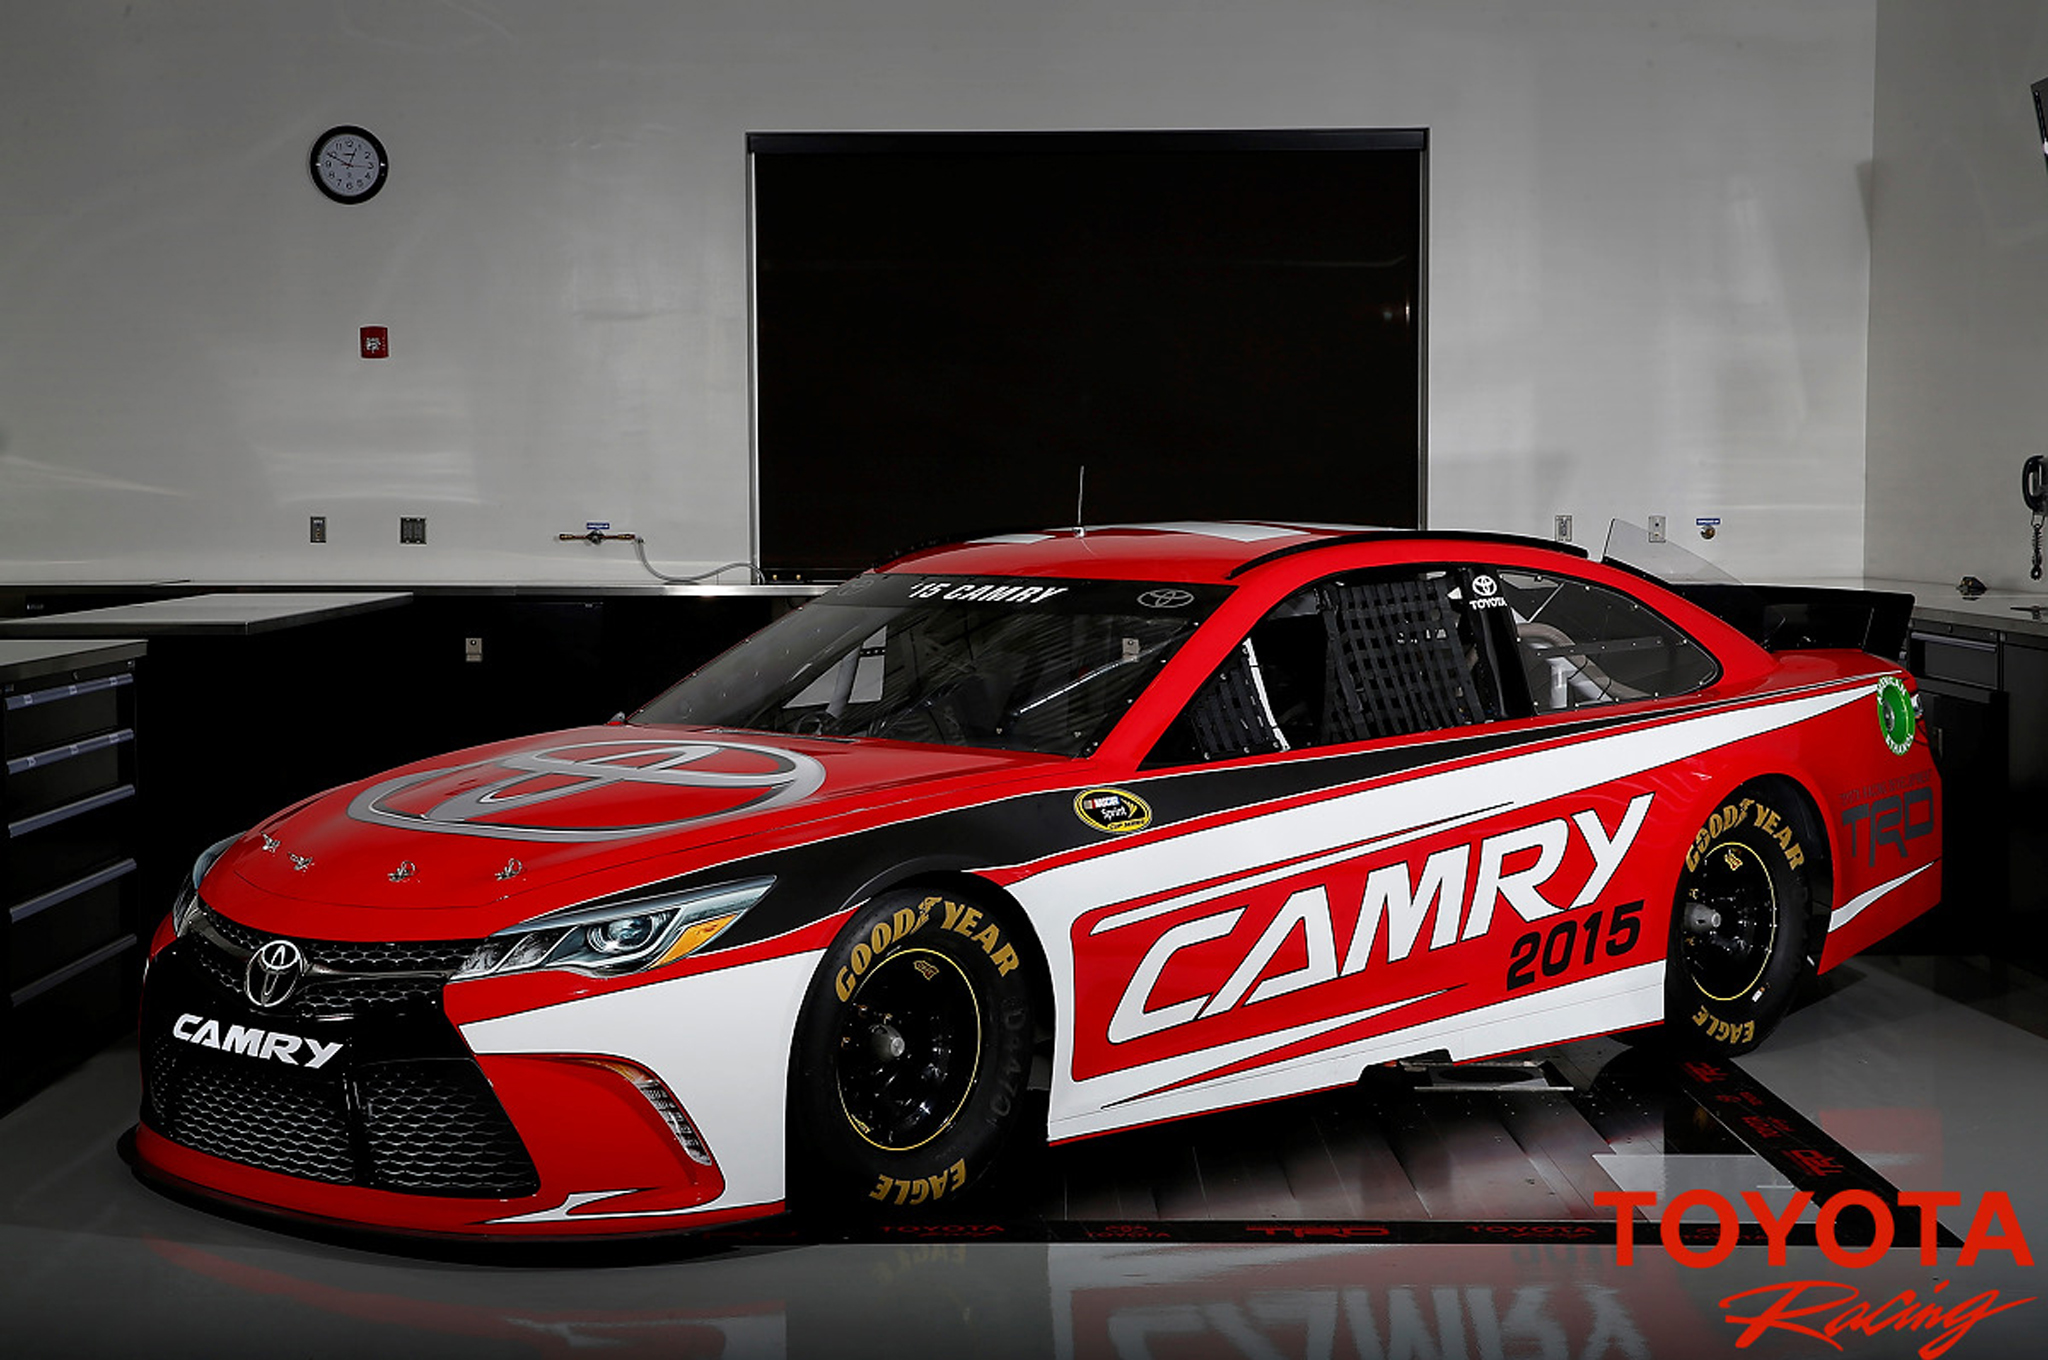 2015 Toyota Camry NASCAR Revealed with Road Car Looks - Motor Trend